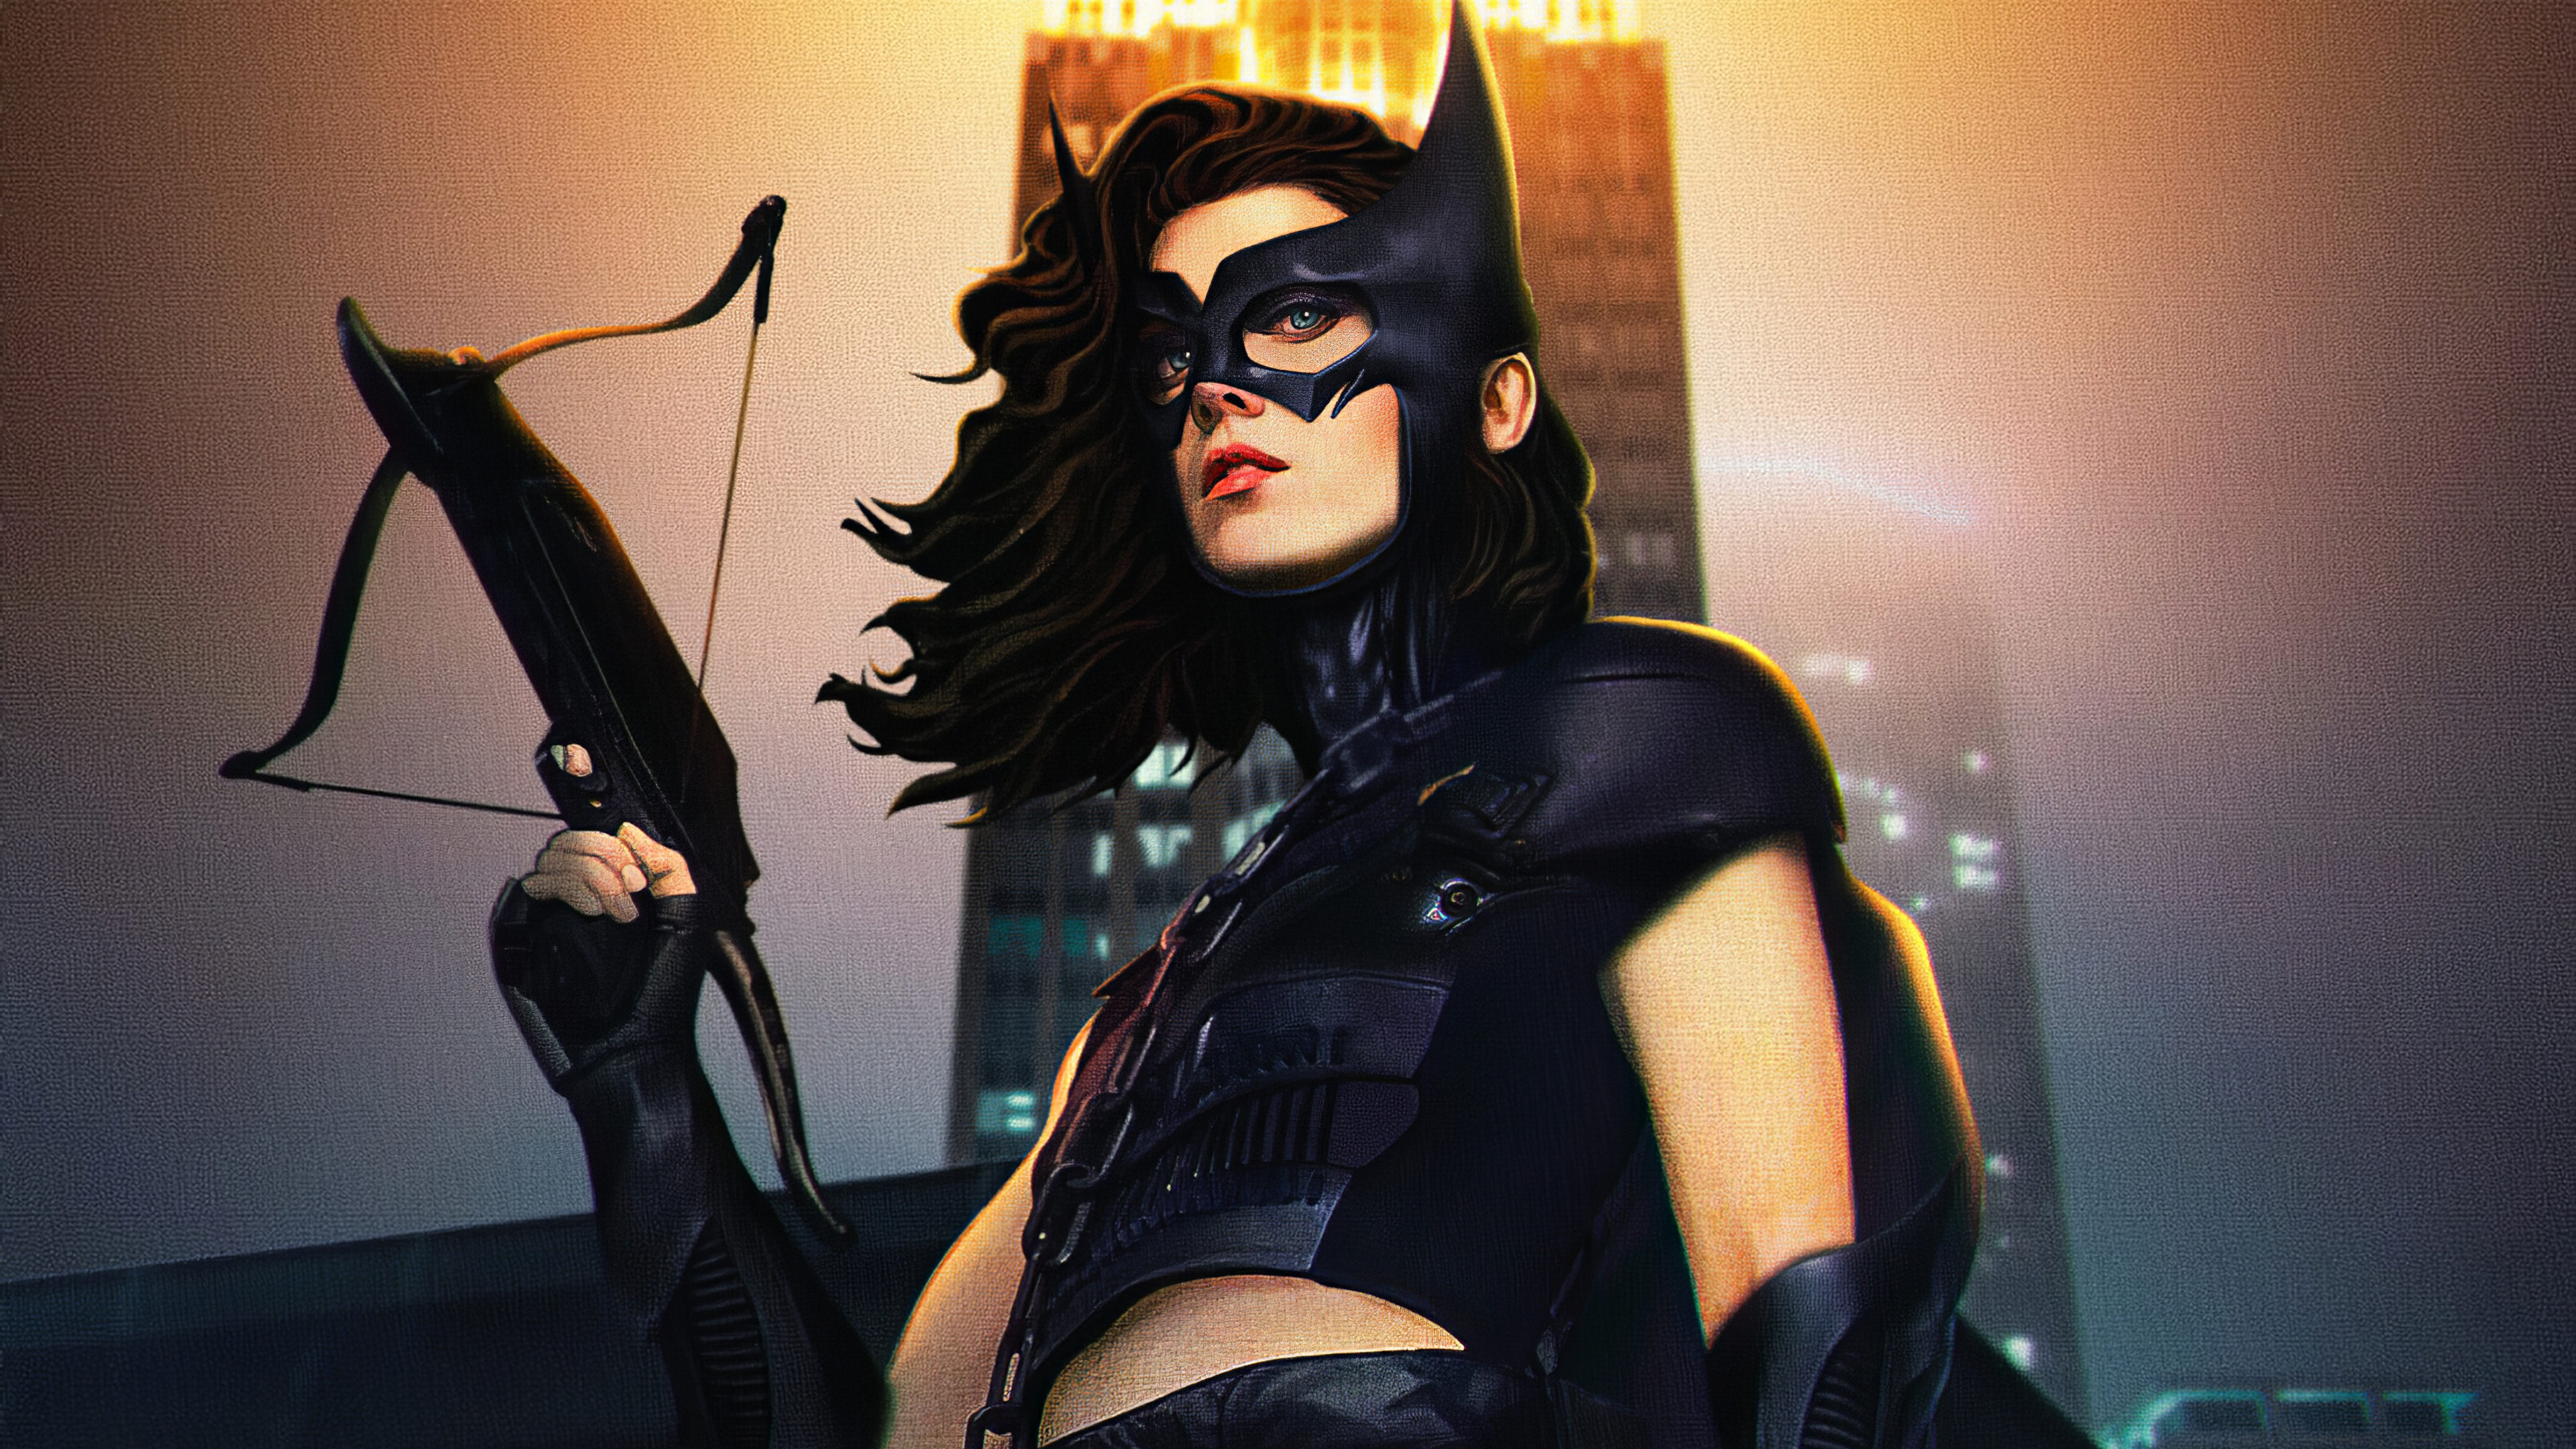 Birds Of Prey Huntress 4k Hd Superheroes 4k Wallpapers Images Backgrounds Photos And Pictures